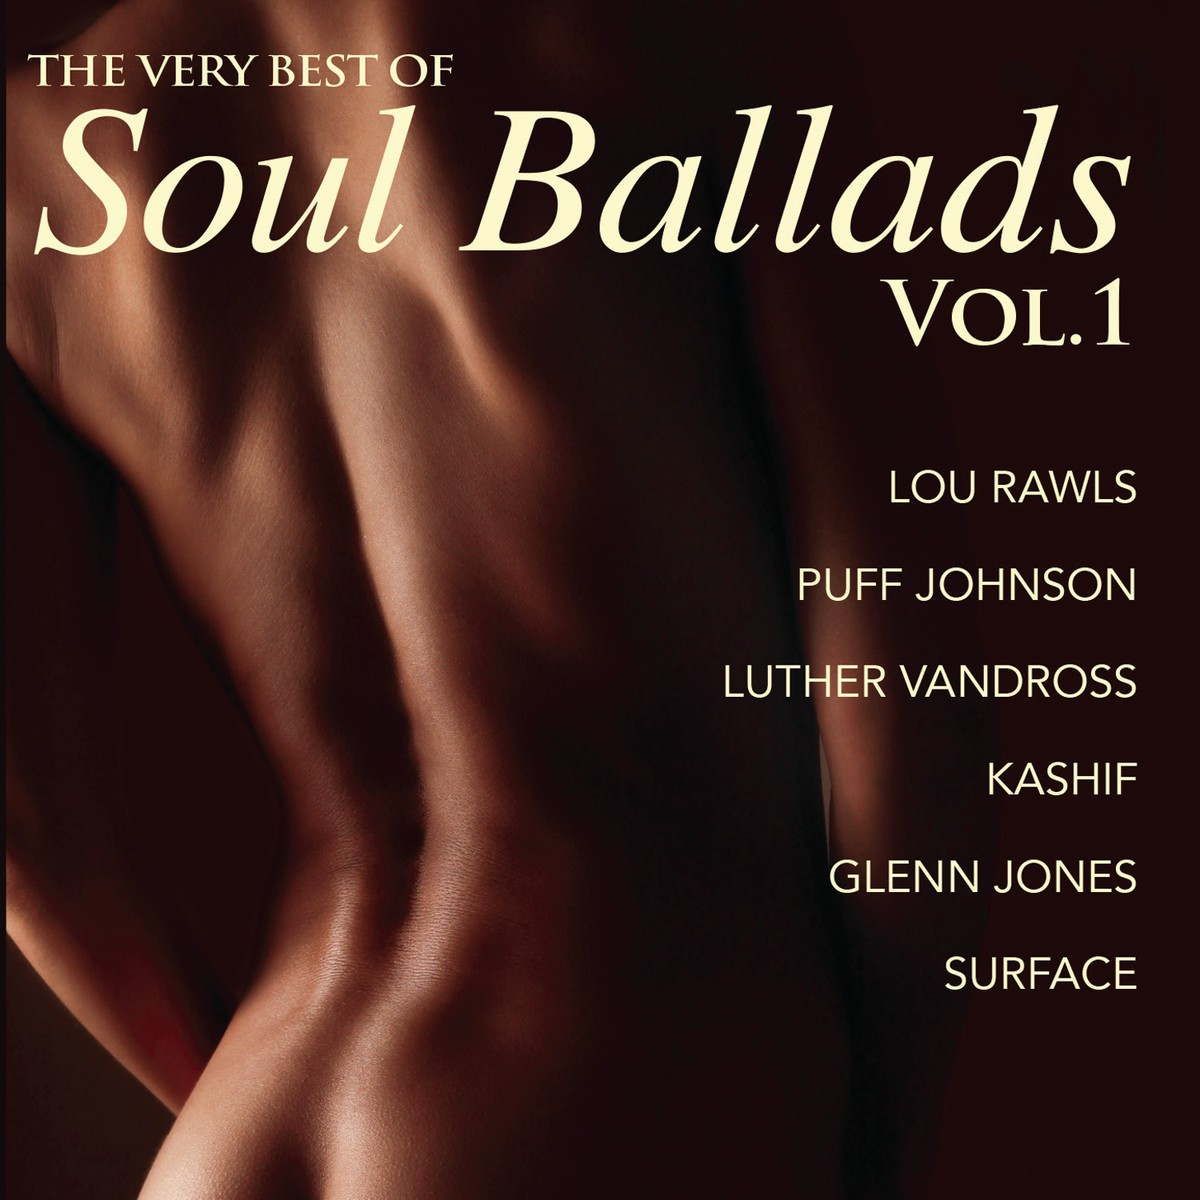 The Very Best Of Soul Ballads Vol.1 CD - CDSM589